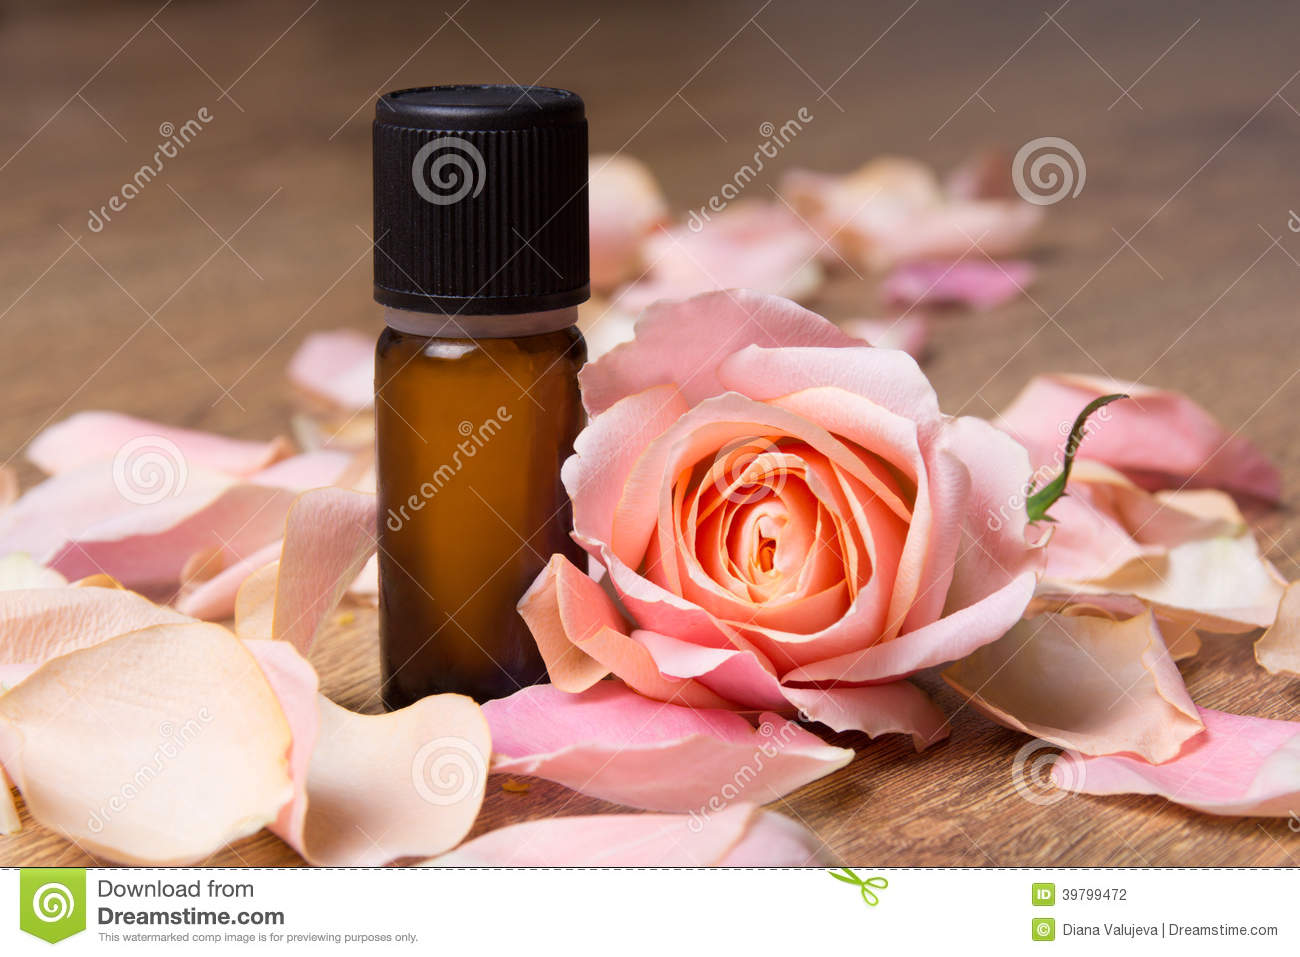 Bottle with essential oil and rose petals stock photo image 39799472 - Rose essential oil business ...